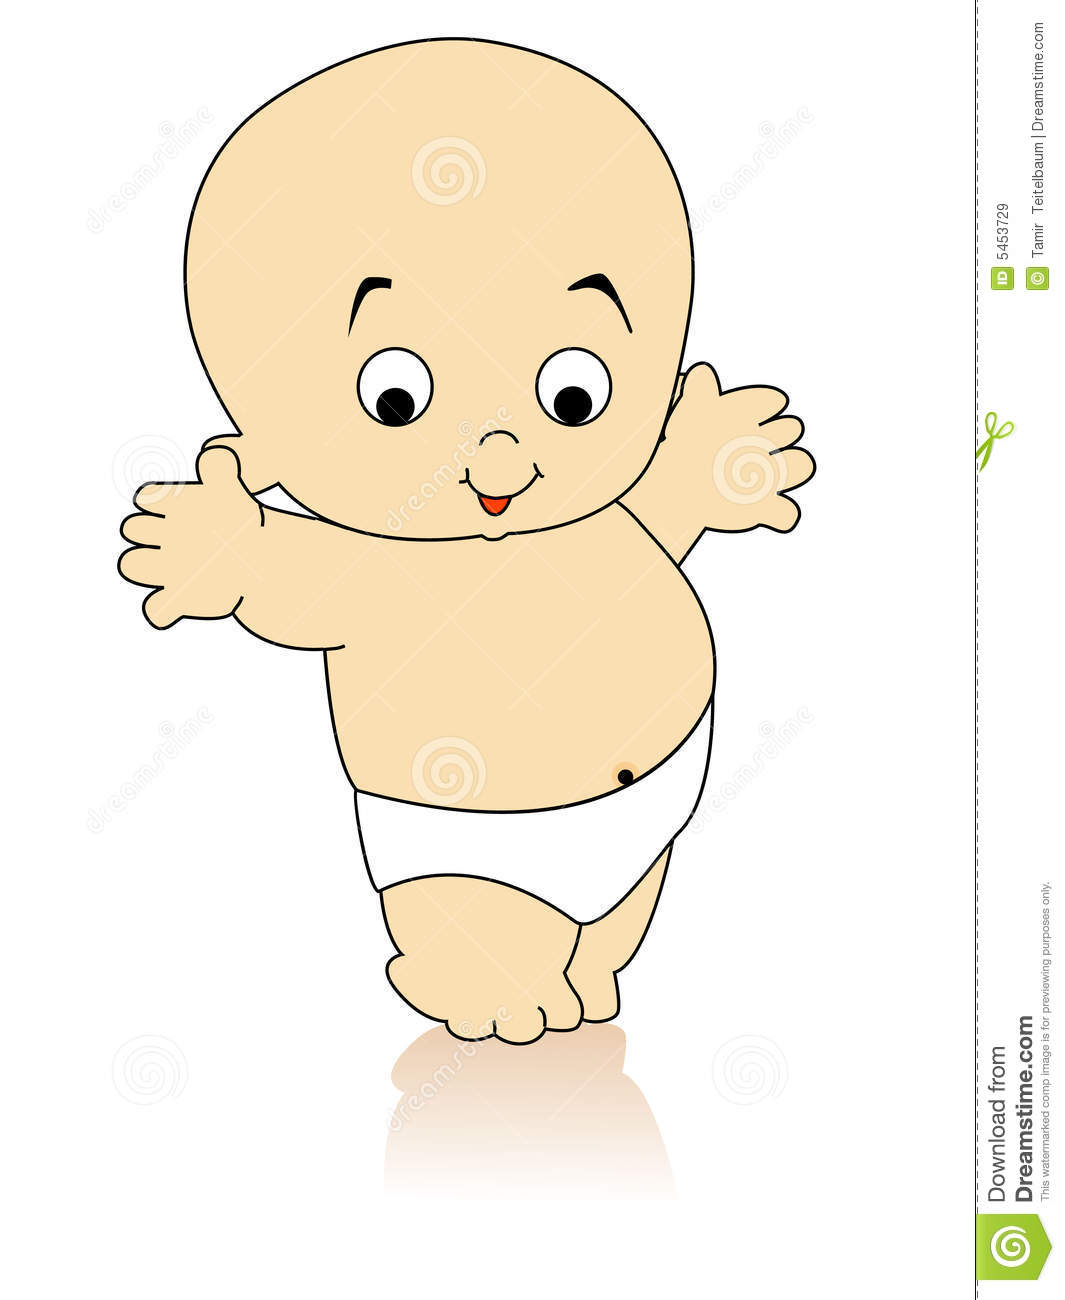 Dancing Baby Stock Illustration Illustration Of Graphic 5453729